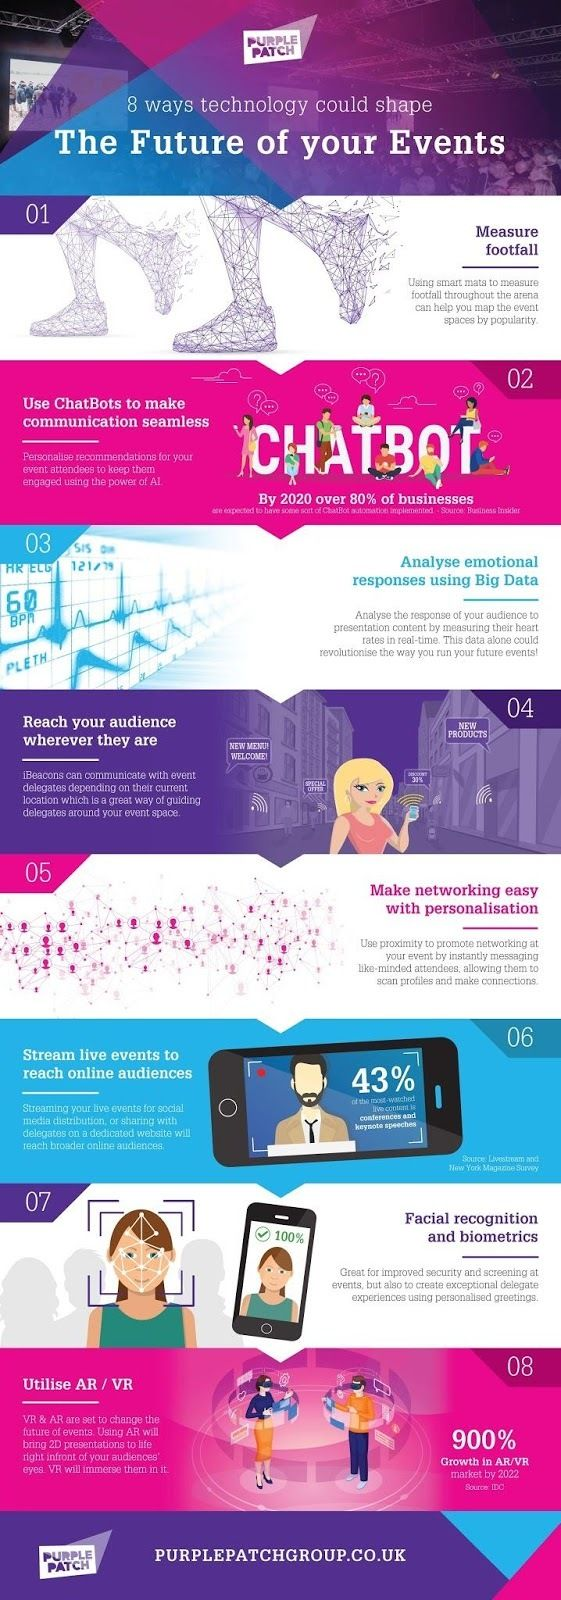 Event Management Company Purple Patch Group Reveal 8 Future Uses Of Technology In Events Event Management Company Event Management Event Technology